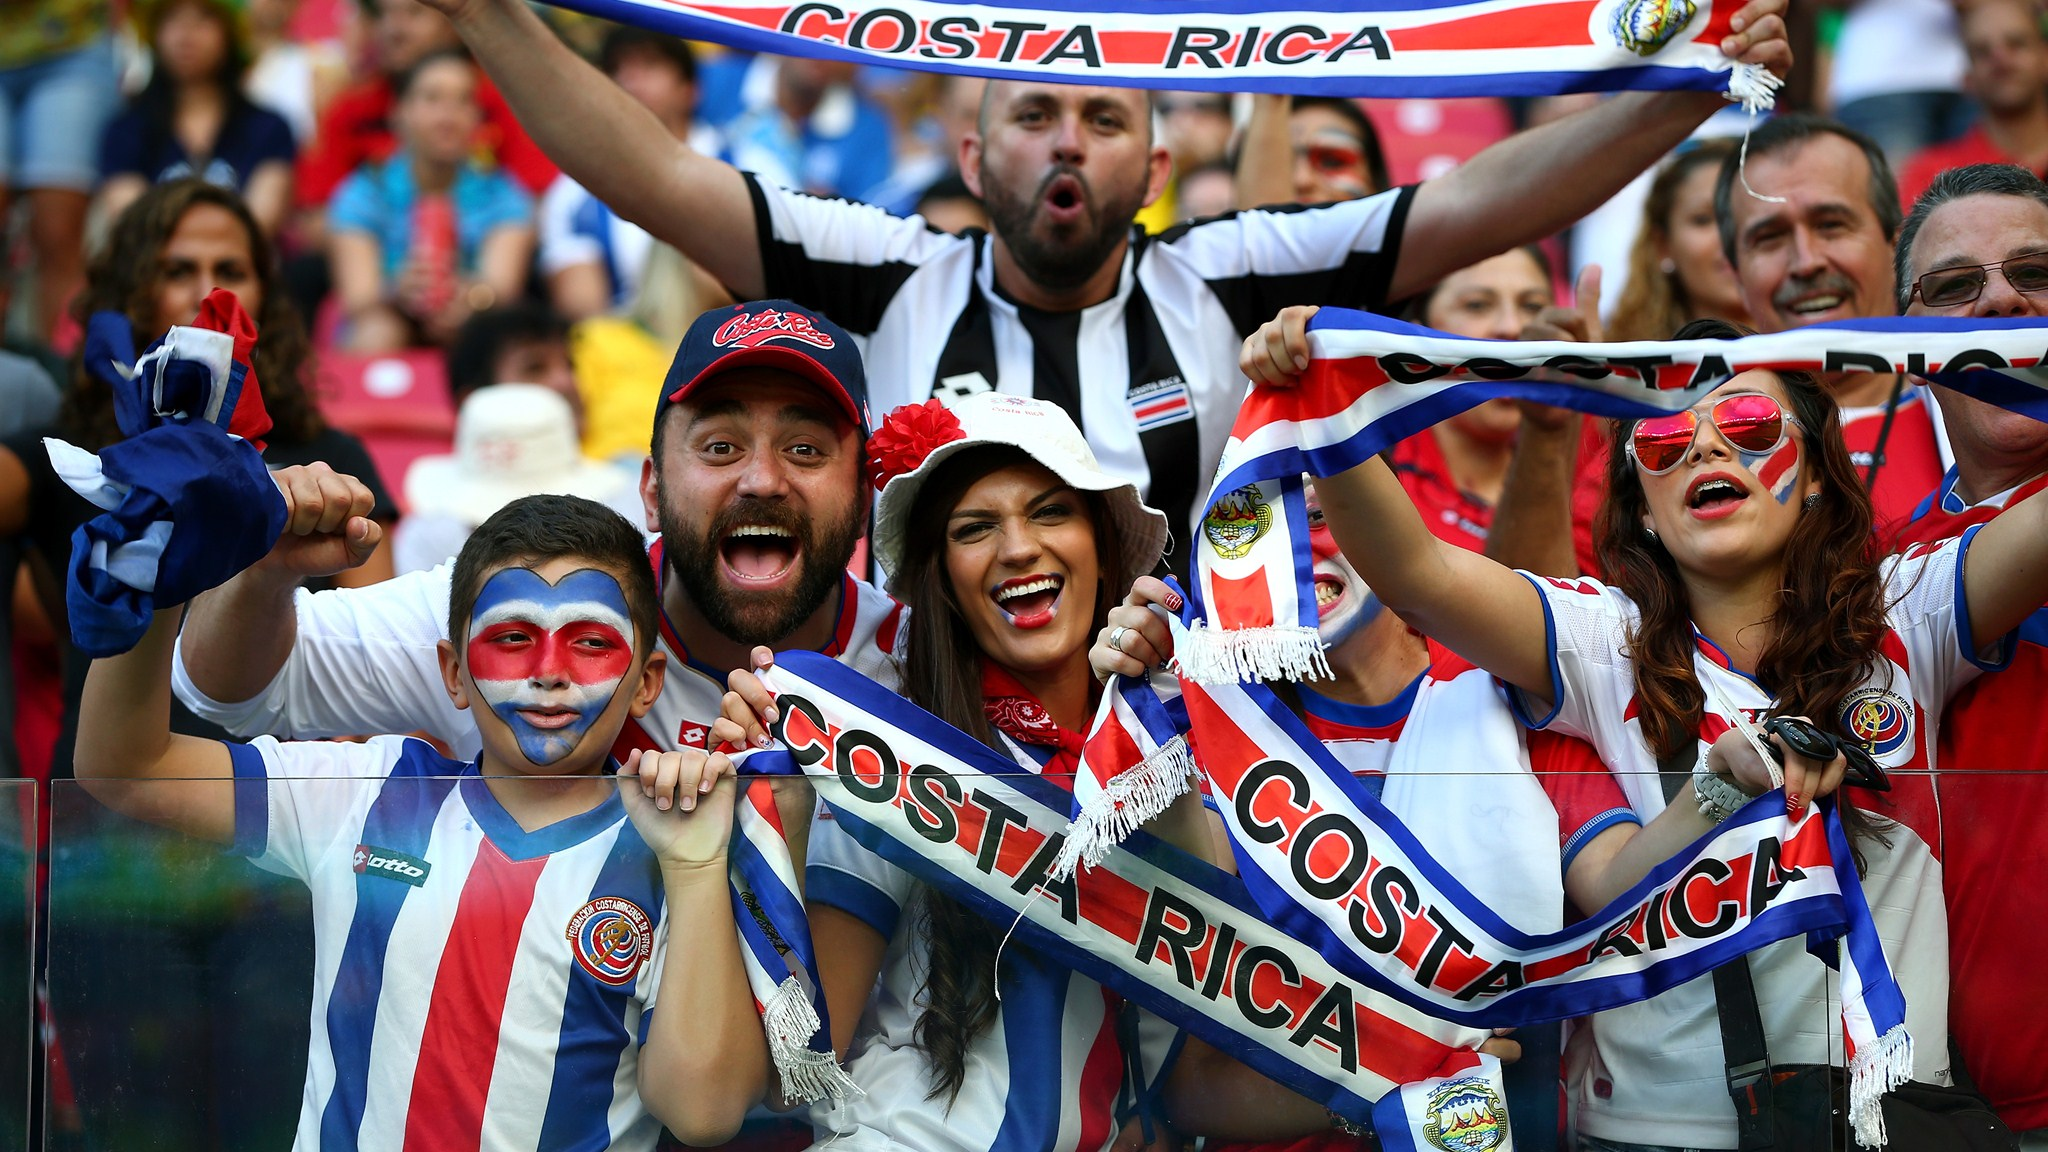 180 - Costa Rica-Greece [1-1 - Costa Rica win on penalties (5 - 3)] -- 29 Jun 2014 - 17-00 - kuaza